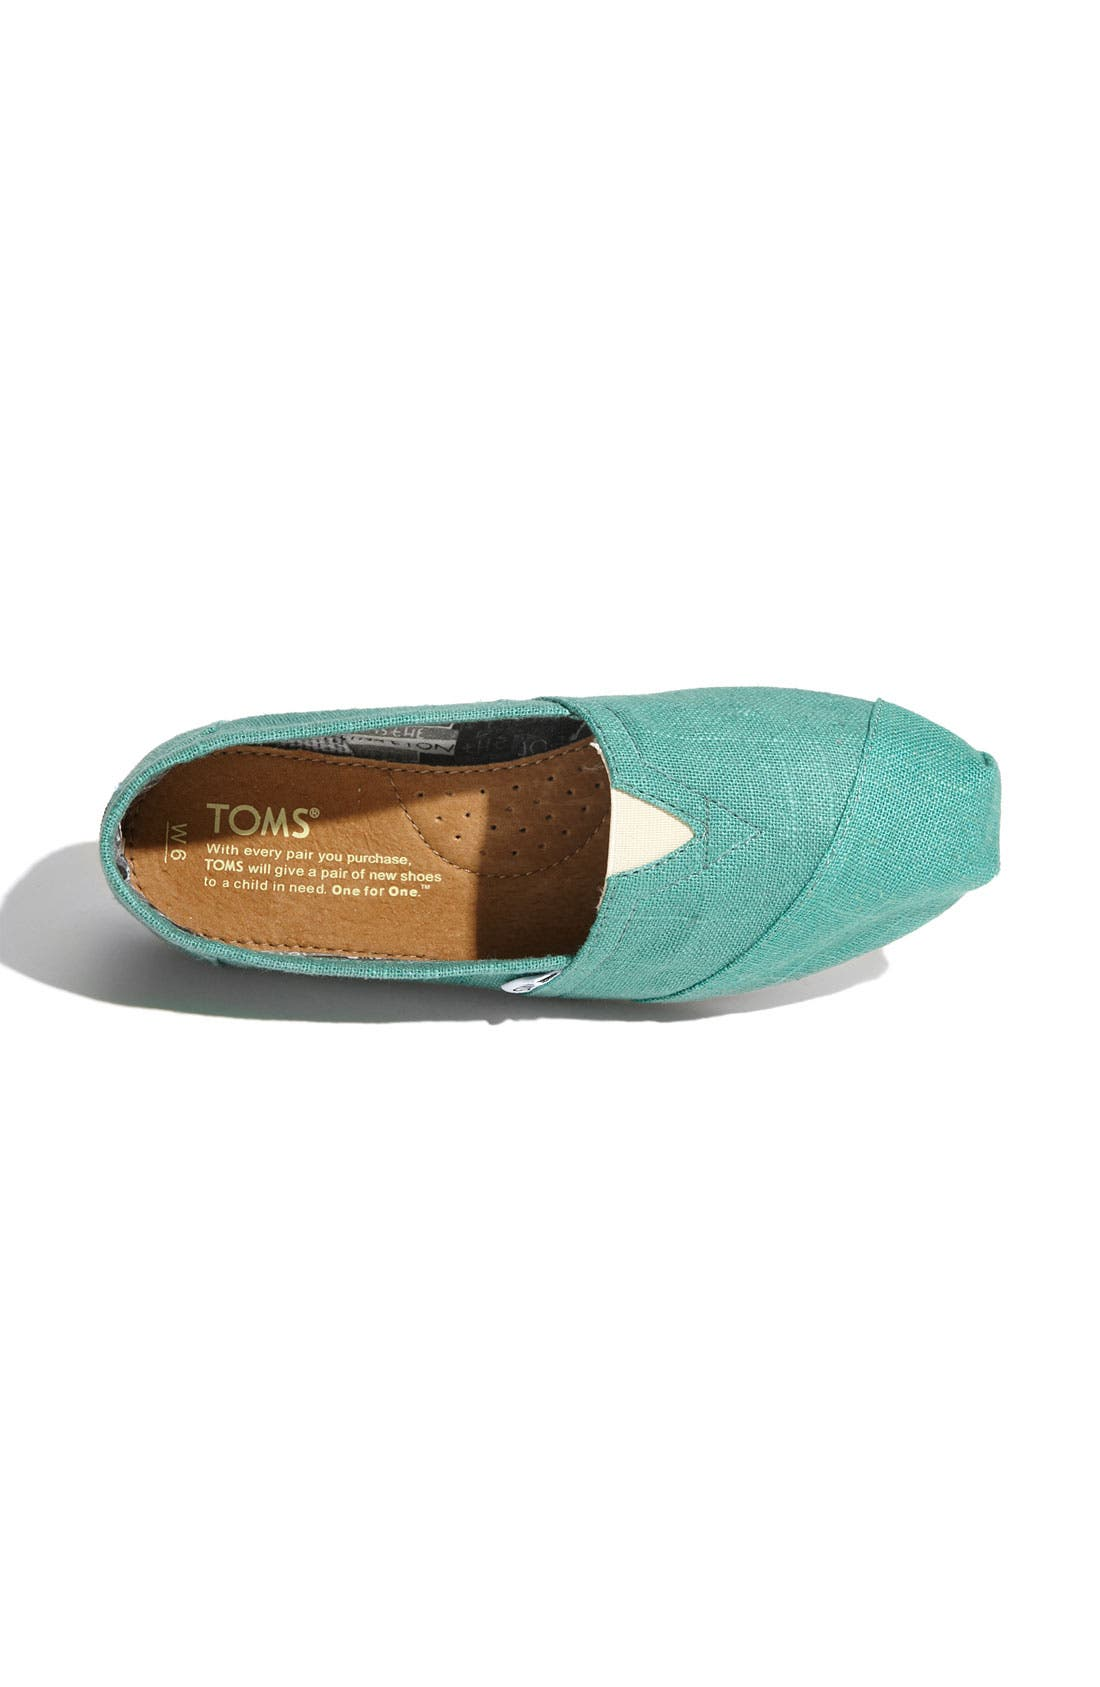 Alternate Image 3  - TOMS 'Classic' Linen Slip-On (Women)